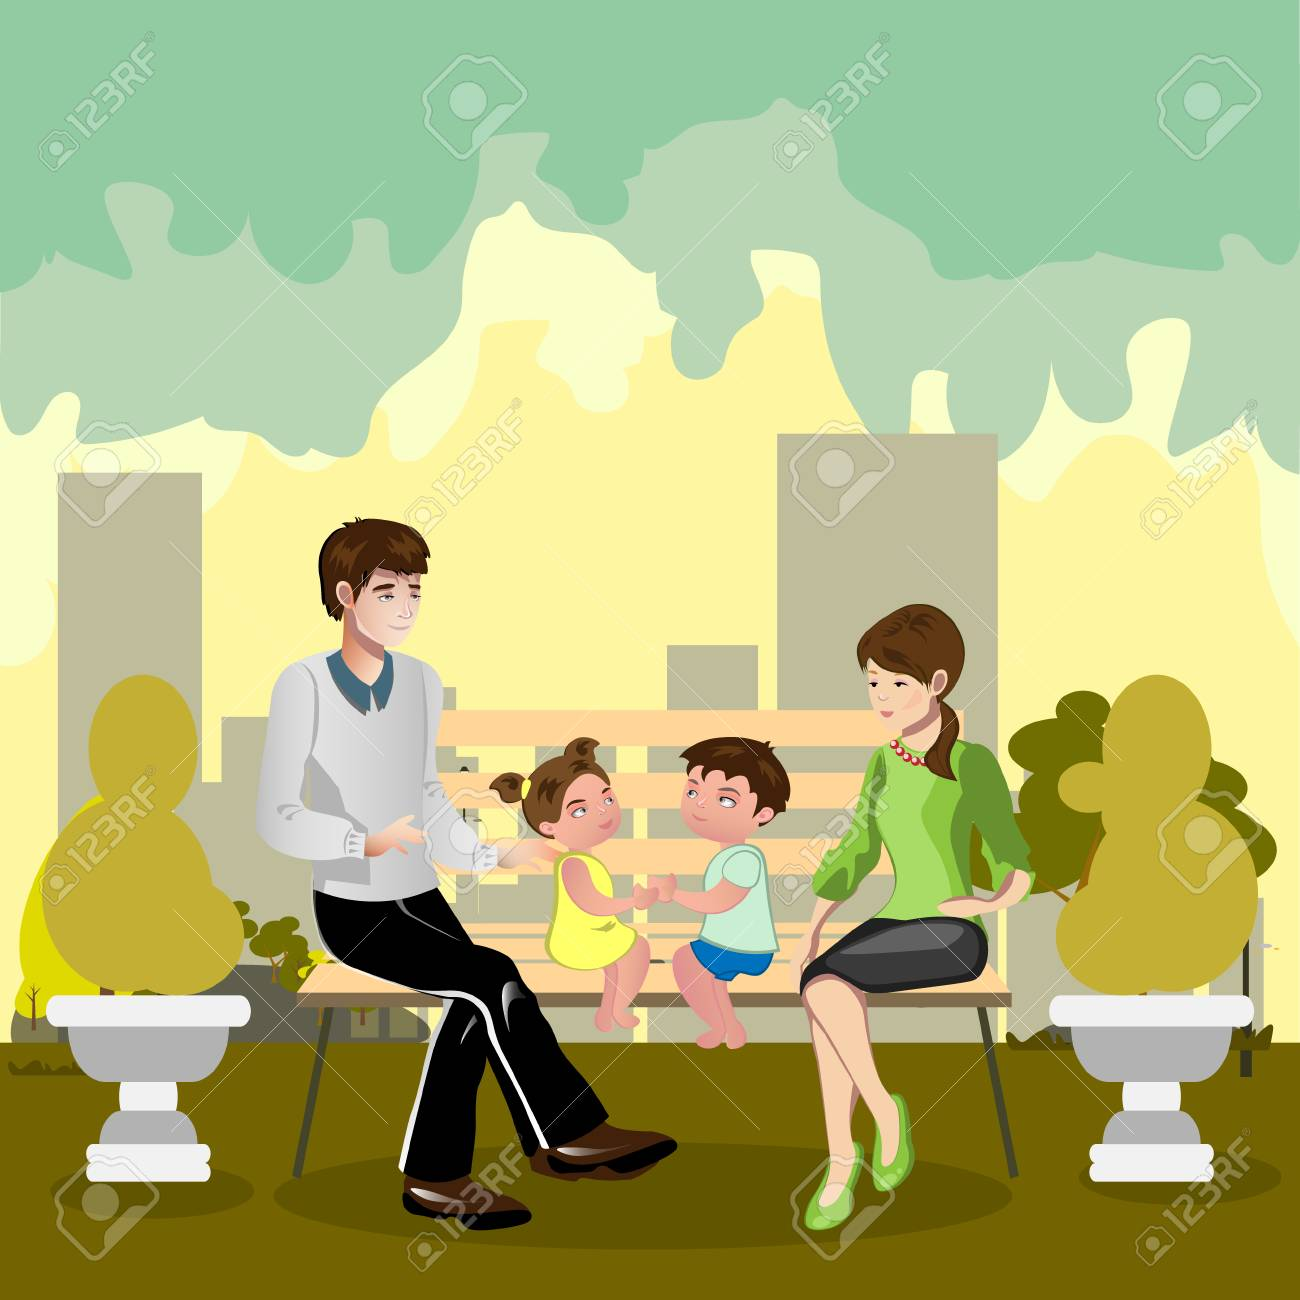 Family sitting in a park - 75276220